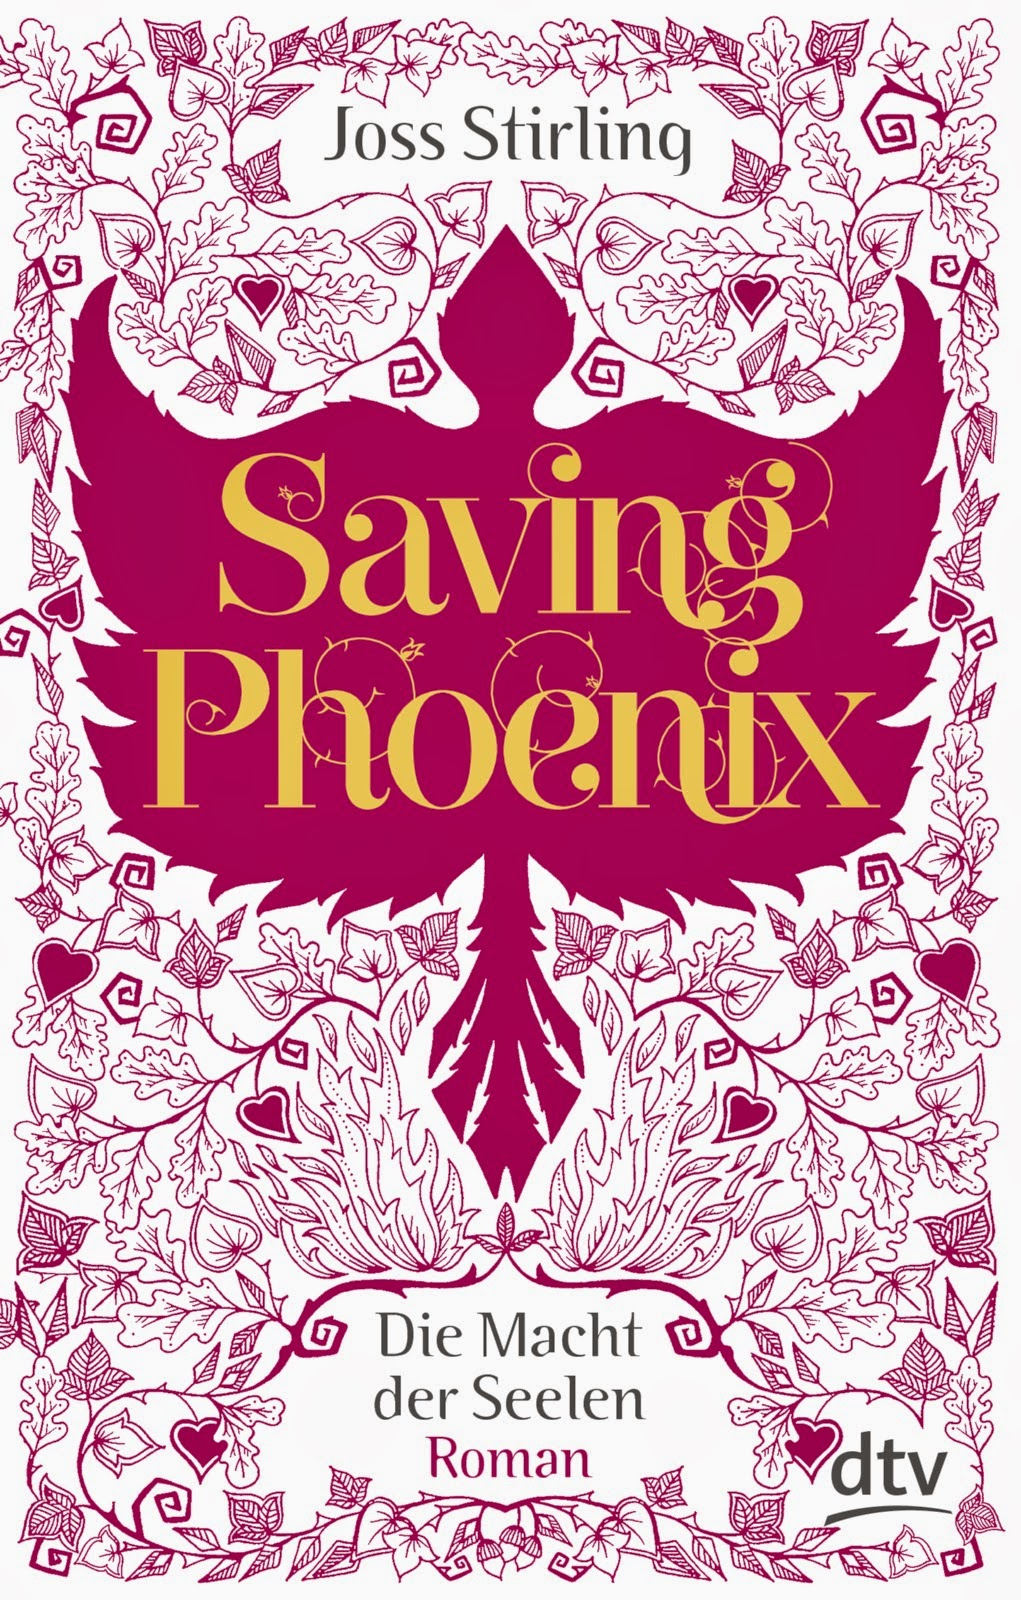 http://www.amazon.de/Saving-Phoenix-Die-Macht-Seelen/dp/3423760621/ref=sr_1_1?ie=UTF8&qid=1398633032&sr=8-1&keywords=saving+phoenix